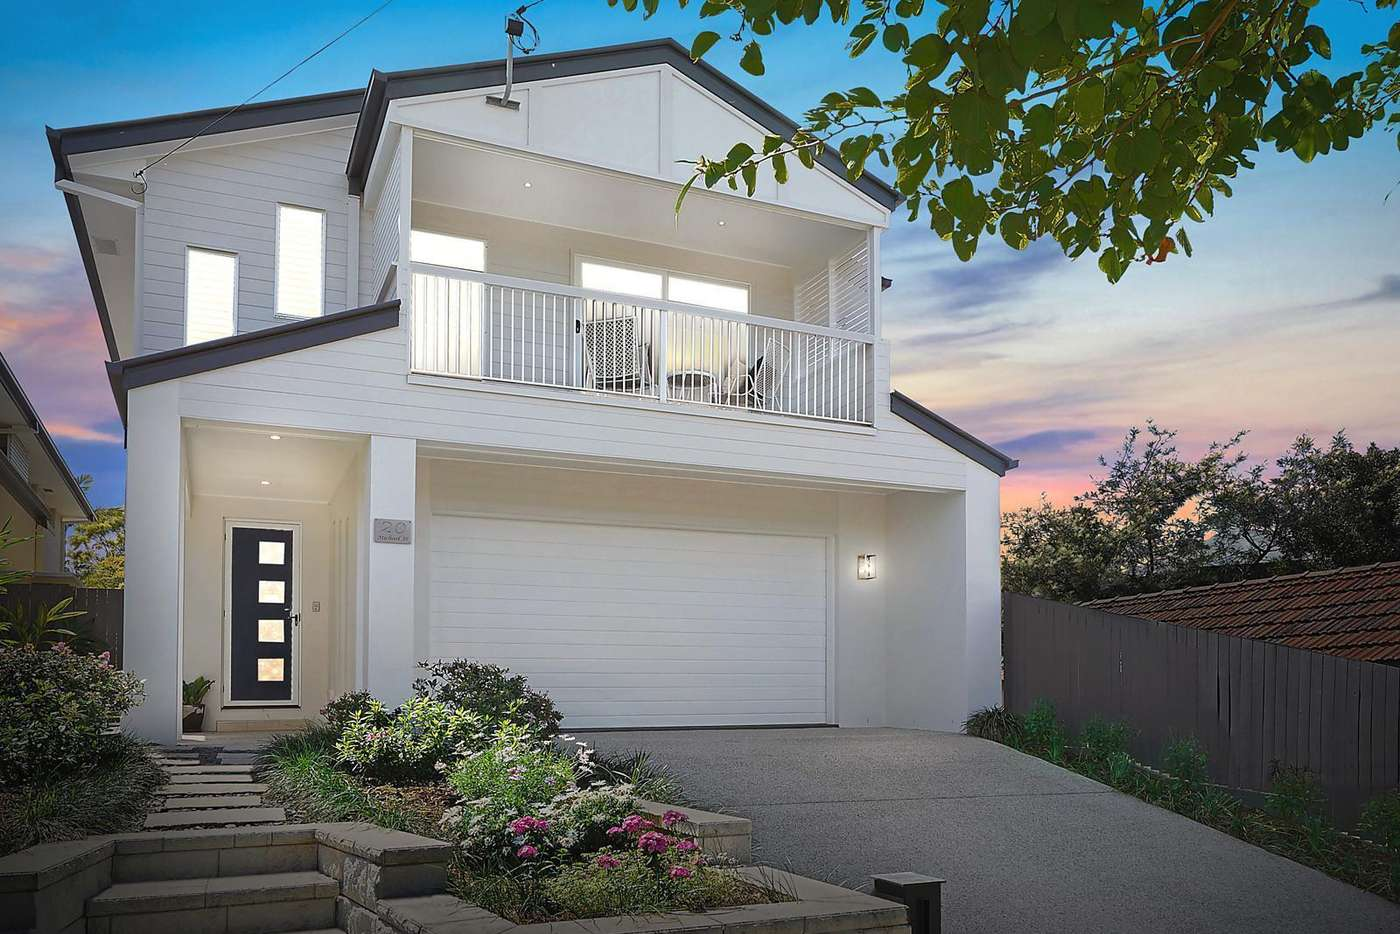 Main view of Homely house listing, 20 Michael Street, Bulimba QLD 4171